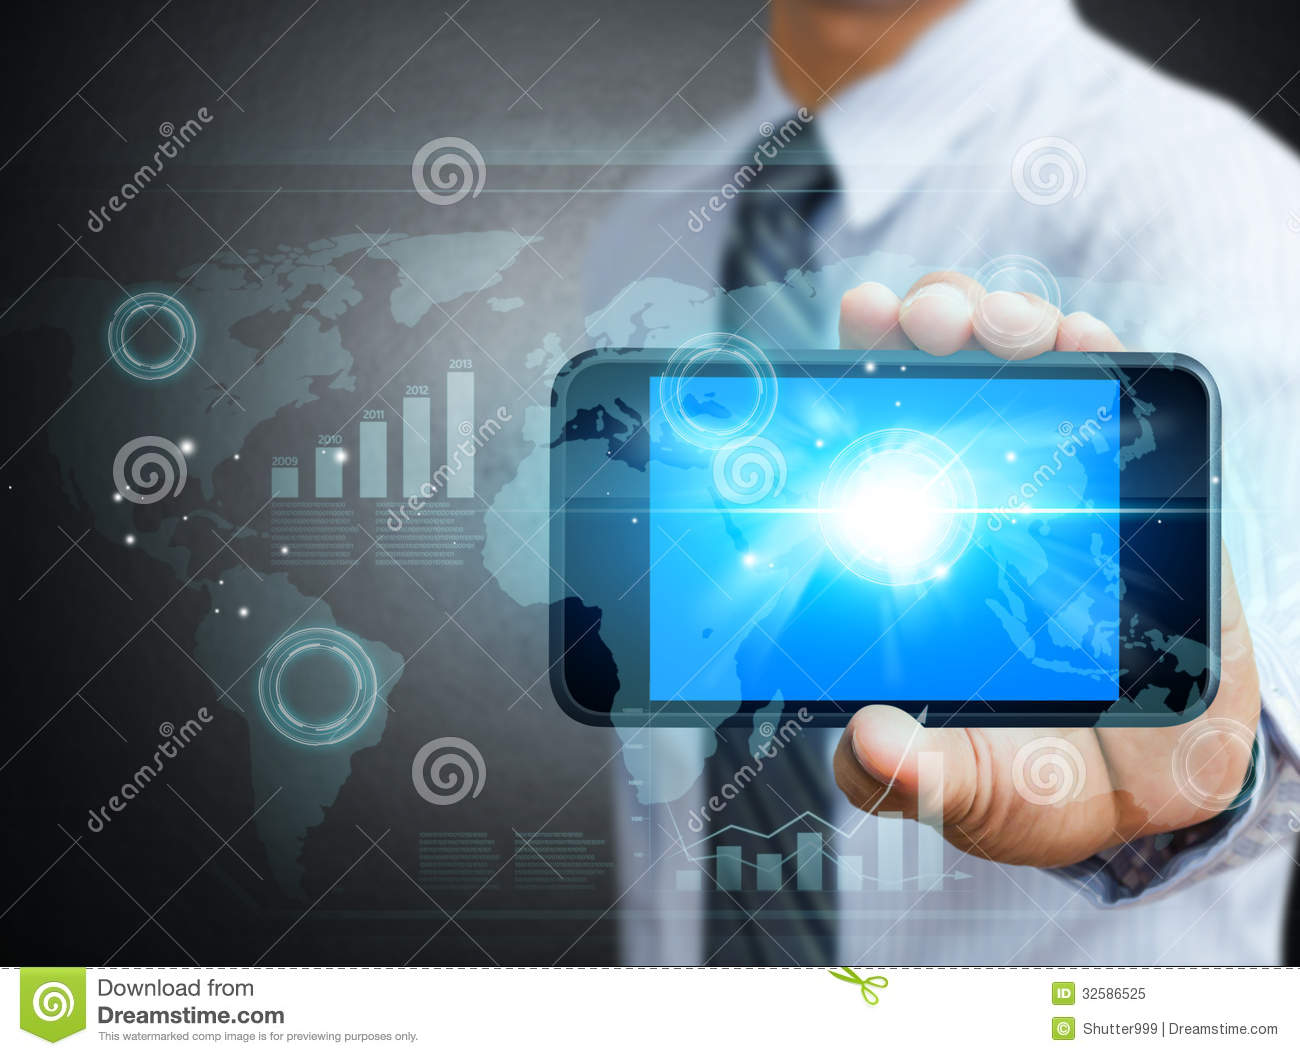 Mobile Technology: Modern Technology Mobile Phone In A Hand Royalty Free